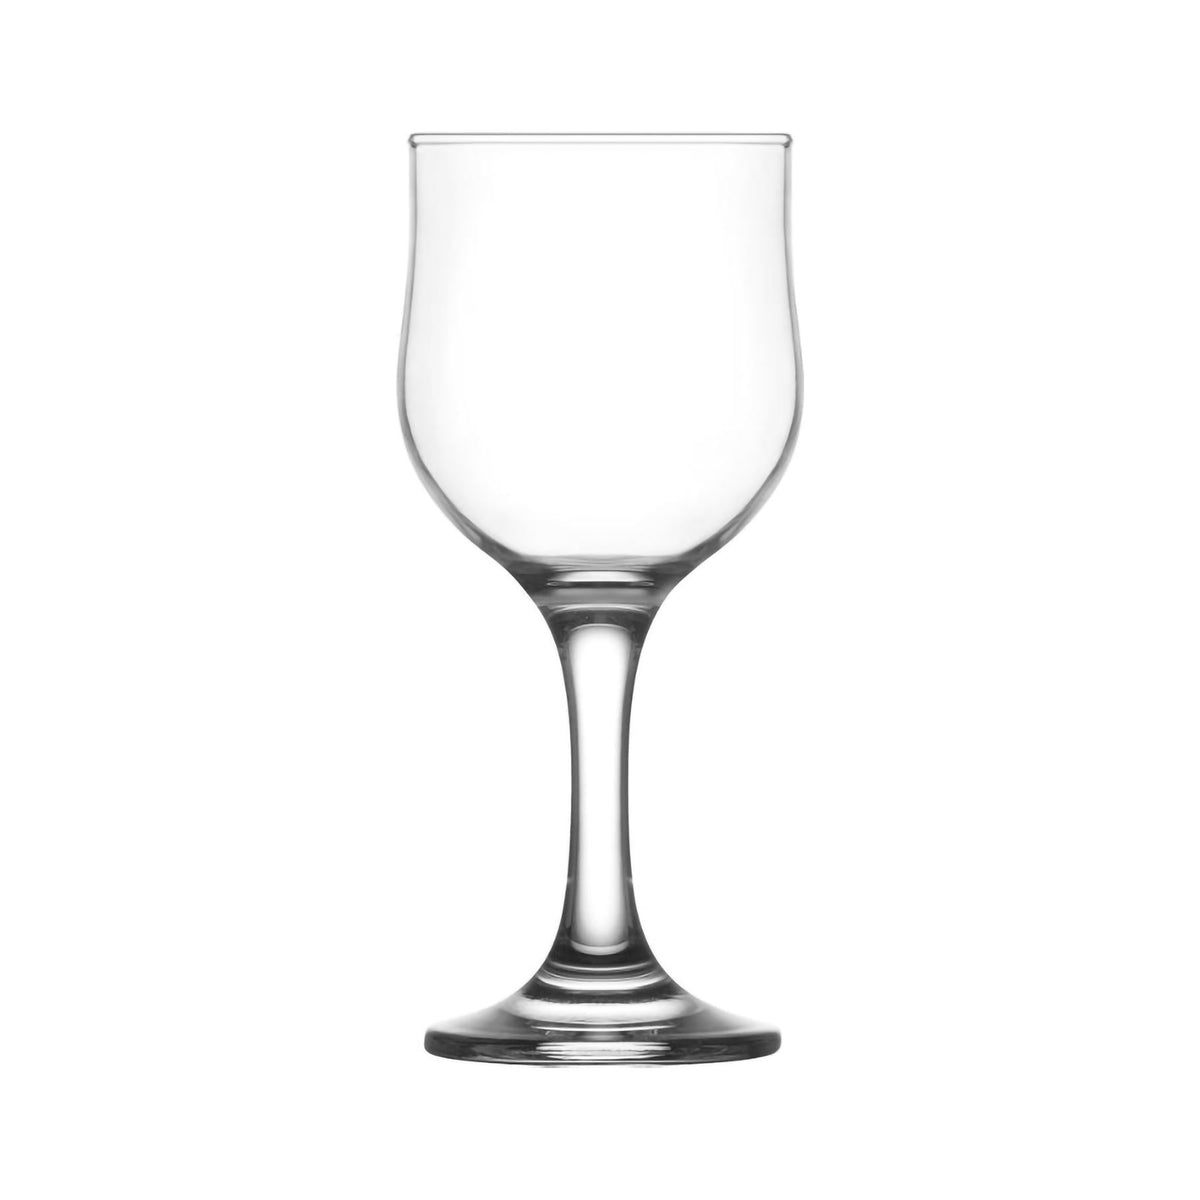 LAV Nevakar Stemmed Red Wine Tulip Glasses - 240ml